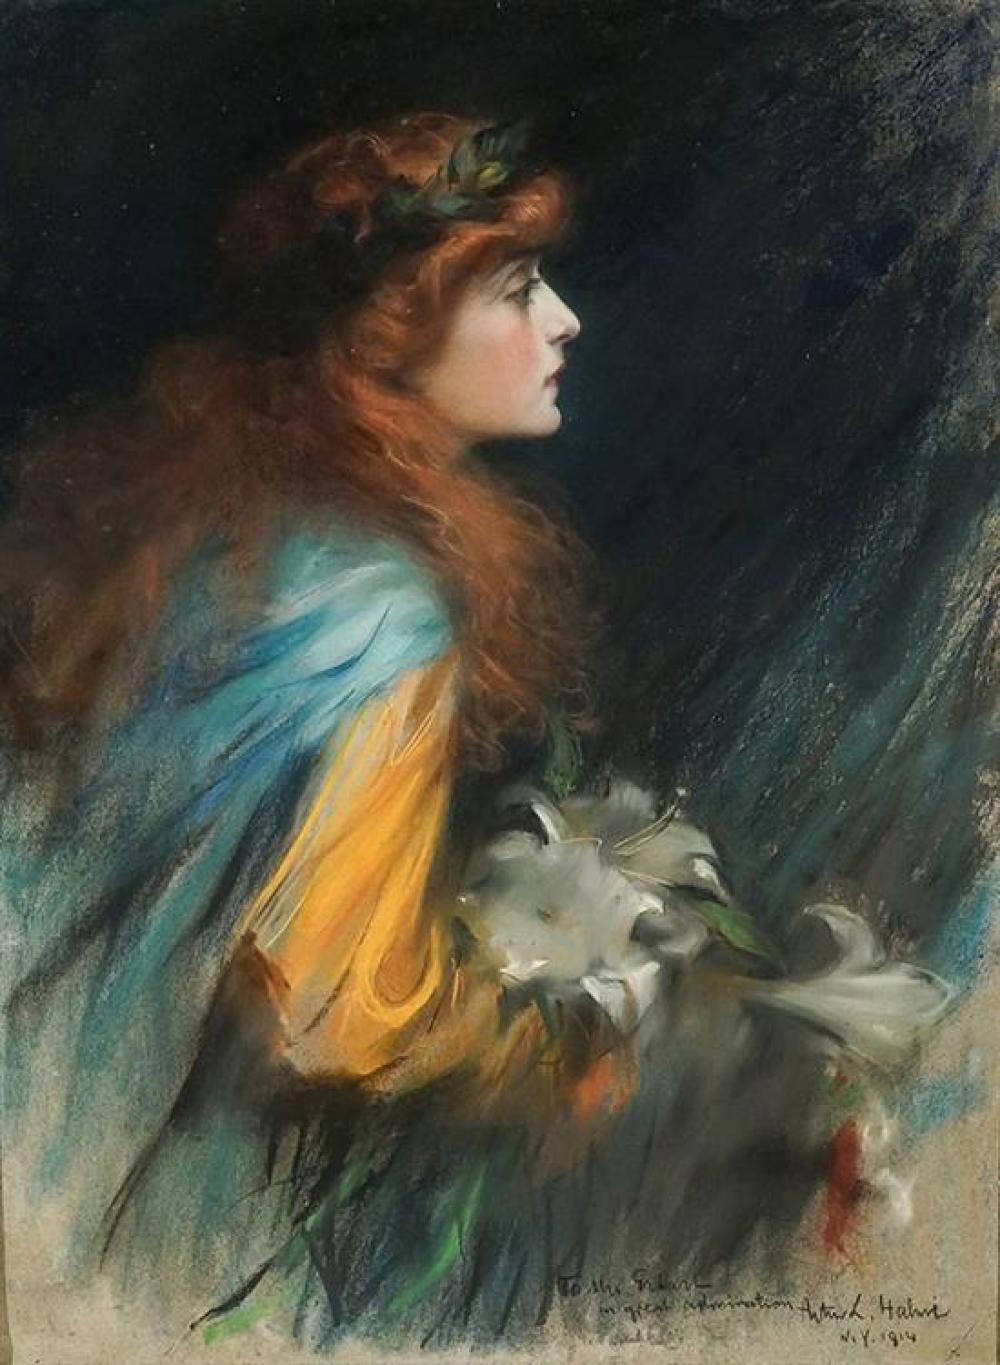 Artur Lajos Halmi (Hungarian 1866-1939), Portrait of a Woman with Red Hair Holding Lilies, Signed Pastel on Paper laid on Canvas